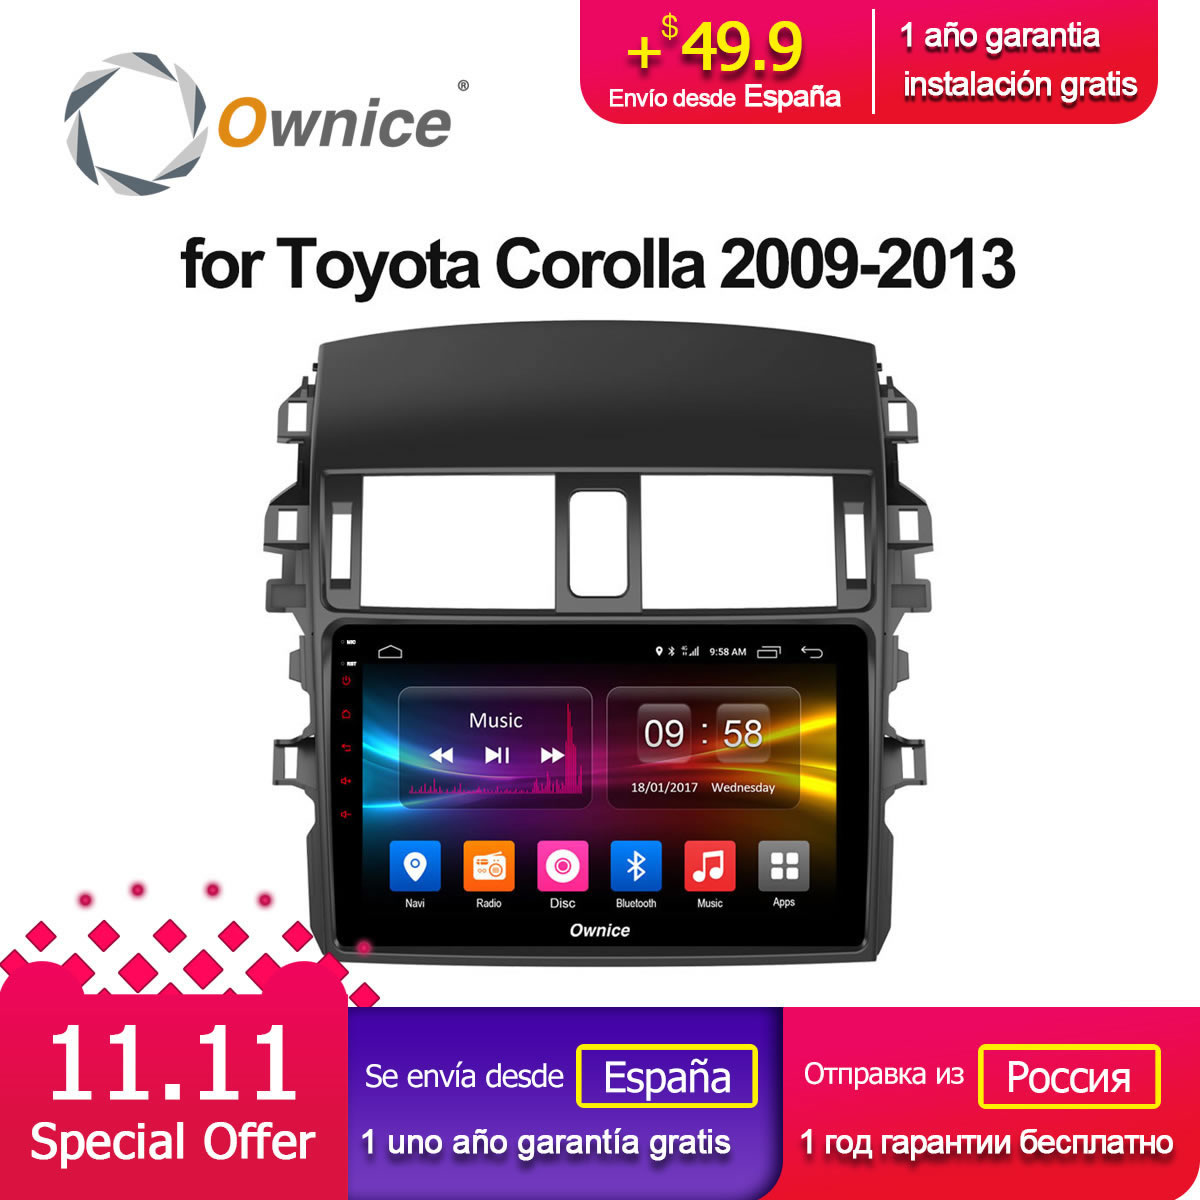 Ownice C500+ G10 Android 8.1 car DVD player Octa Core for Toyota corolla 2009 2010 2011 2012 2013 2GB RAM 32G ROM Support 4G LTE ownice c500 g10 octa core 2gb ram 32g rom android car dvd 8 1 gps for mazda 6 summit 2009 2015 wifi 4g lte radio dab dvr